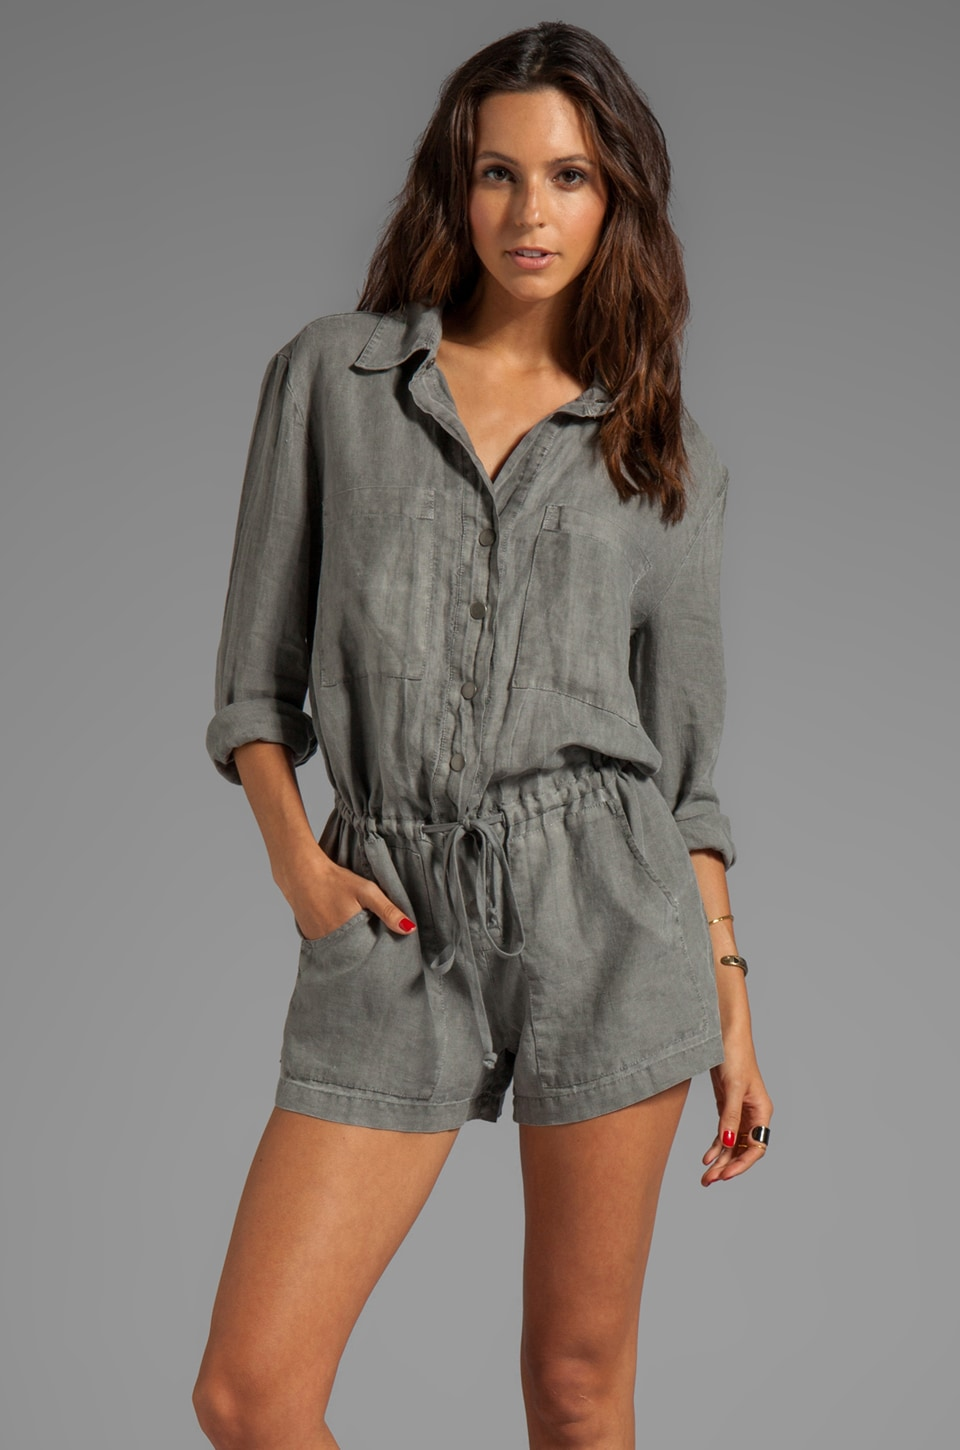 Enza Costa Long Sleeve Linen Romper in Carbon